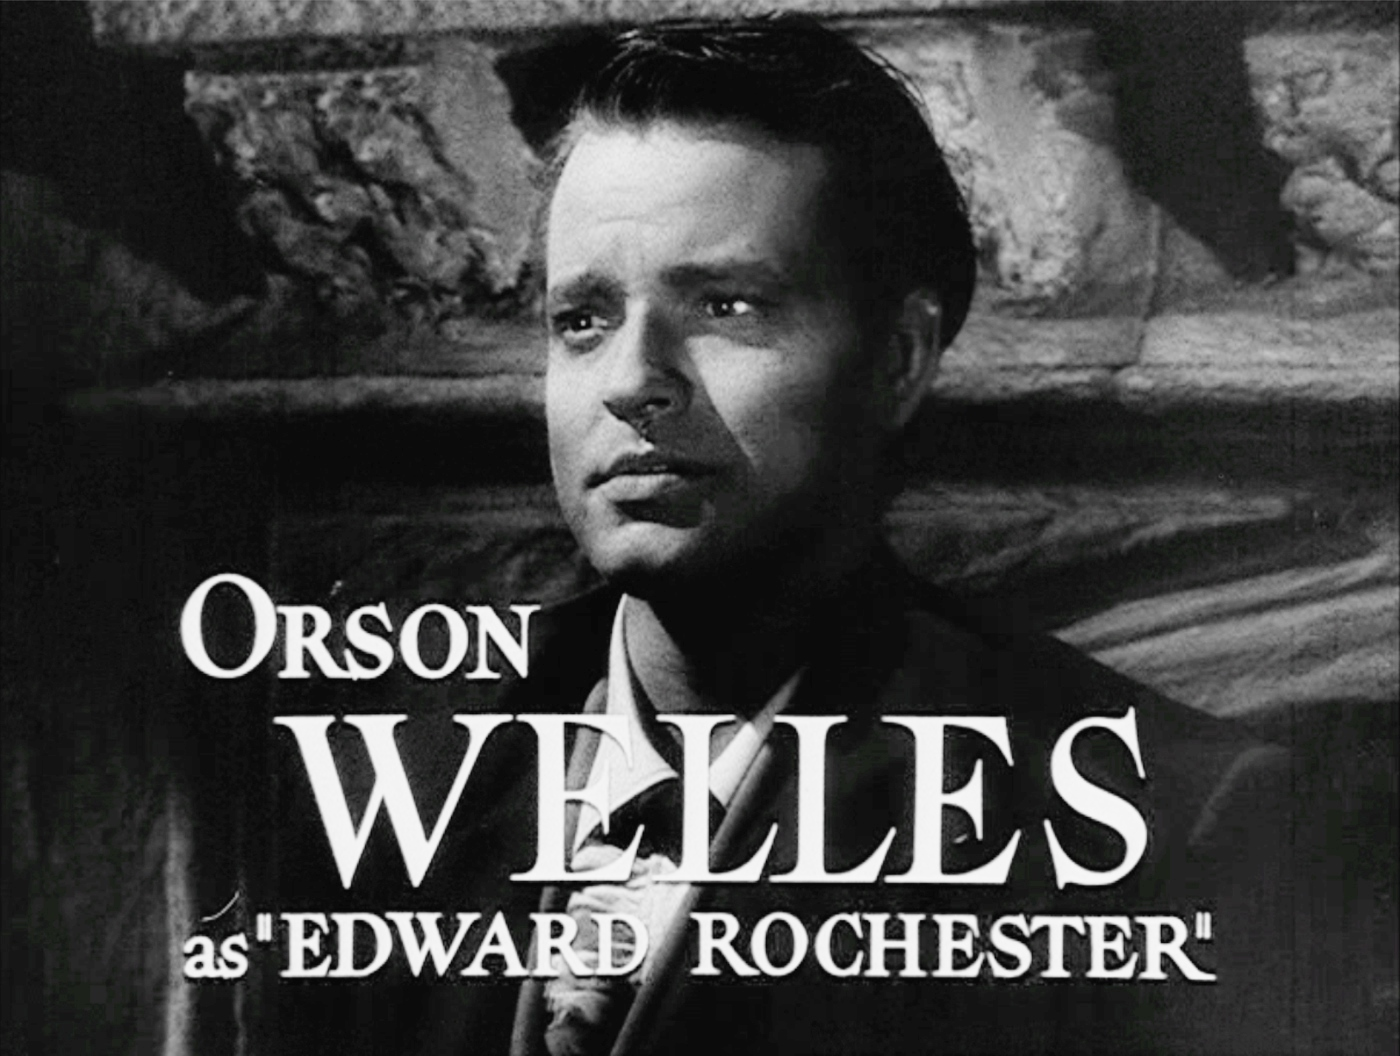 Orson Welles as Edward Rochester in the 1943 film adaptation.